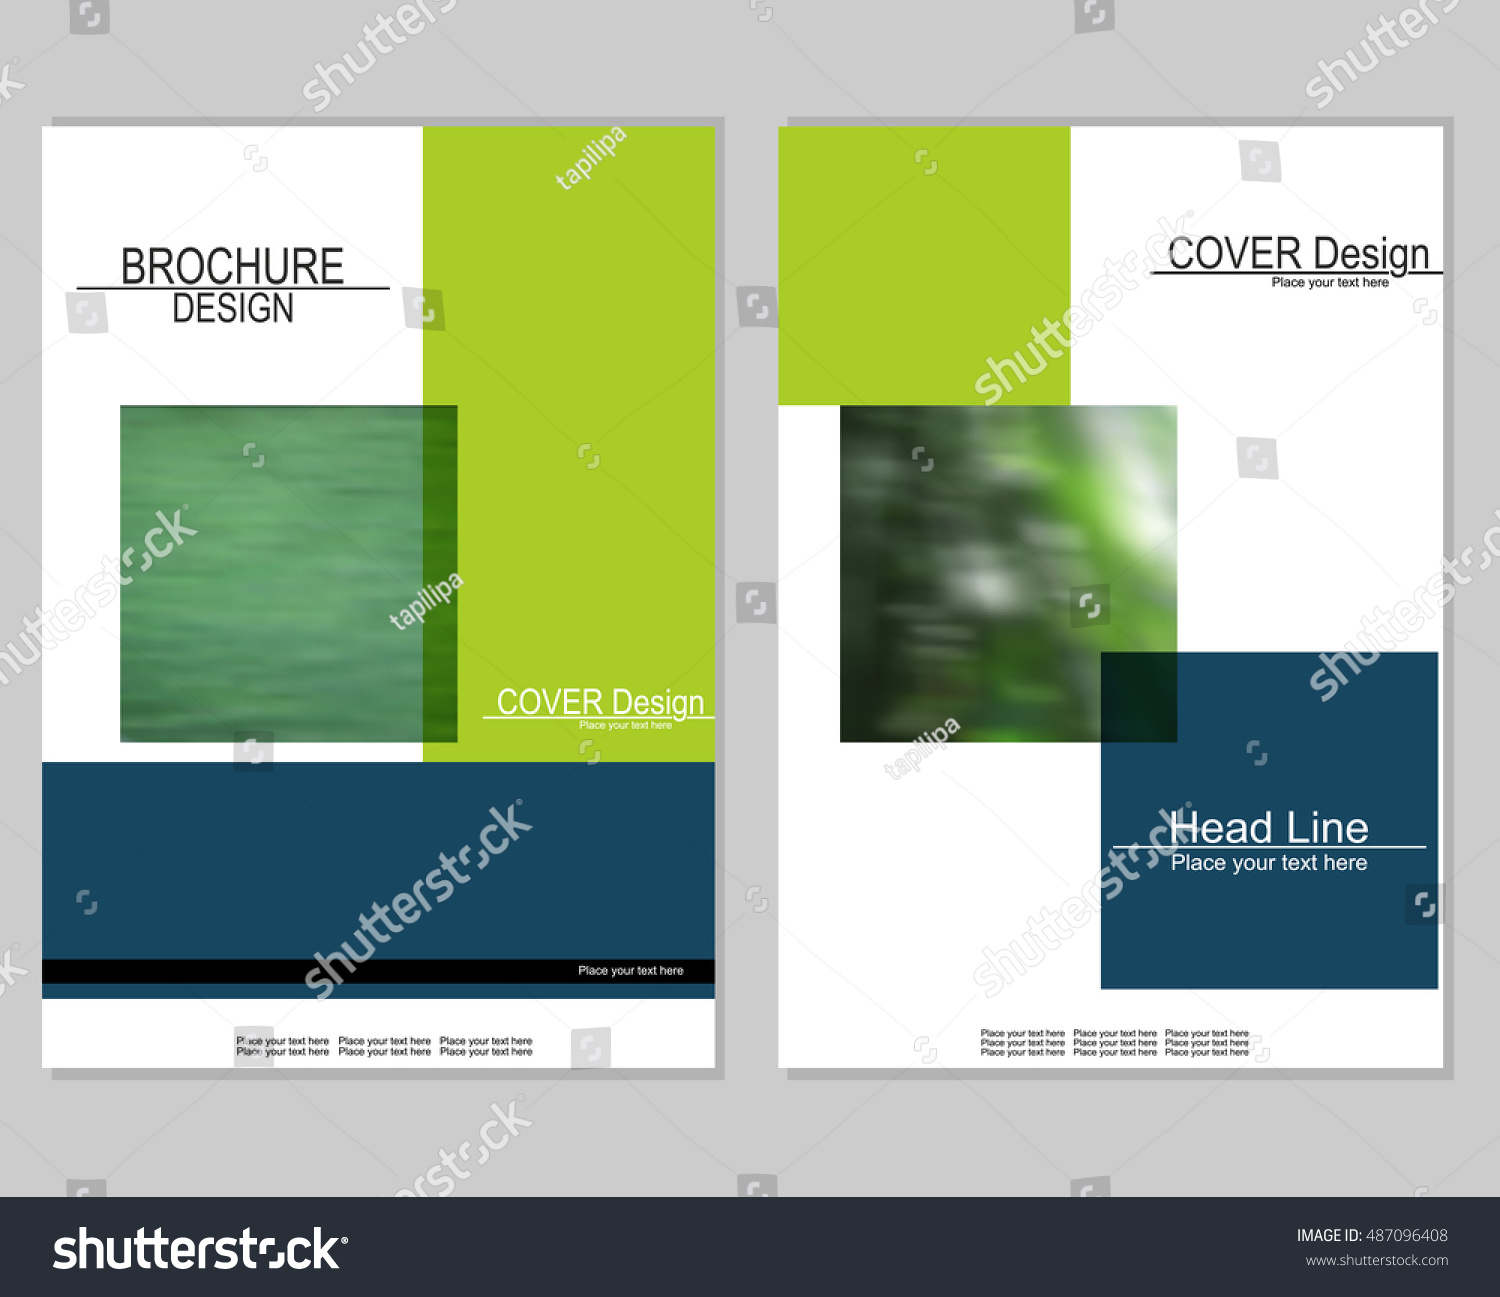 vector brochure cover templates blurred plants eps mesh vector brochure cover templates blurred plants eps 10 mesh background